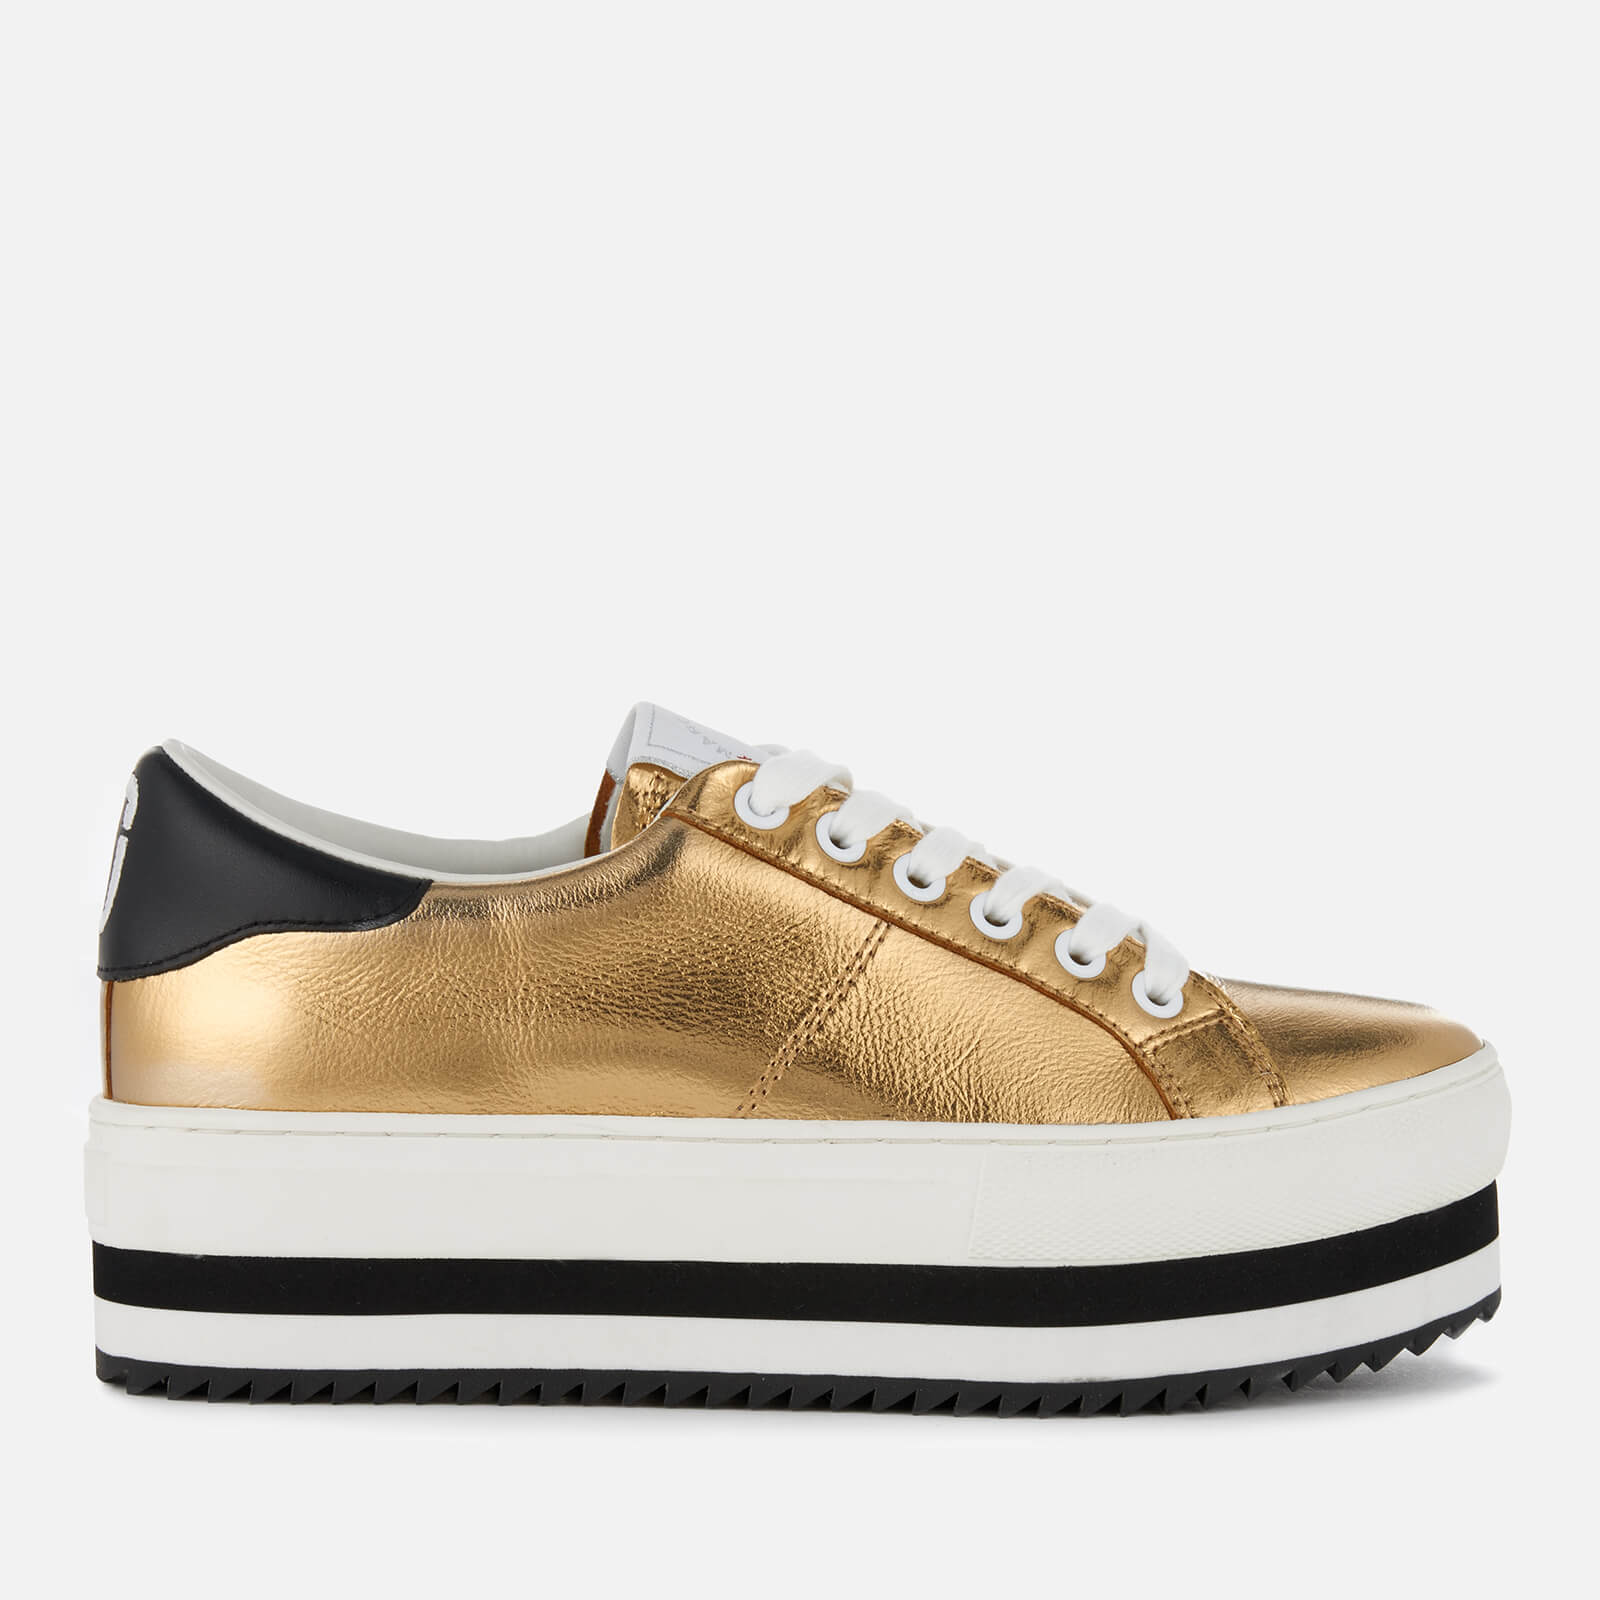 f2d64008eef9 Marc Jacobs Women s Grand Leather Platform Trainers - Gold - Free UK ...